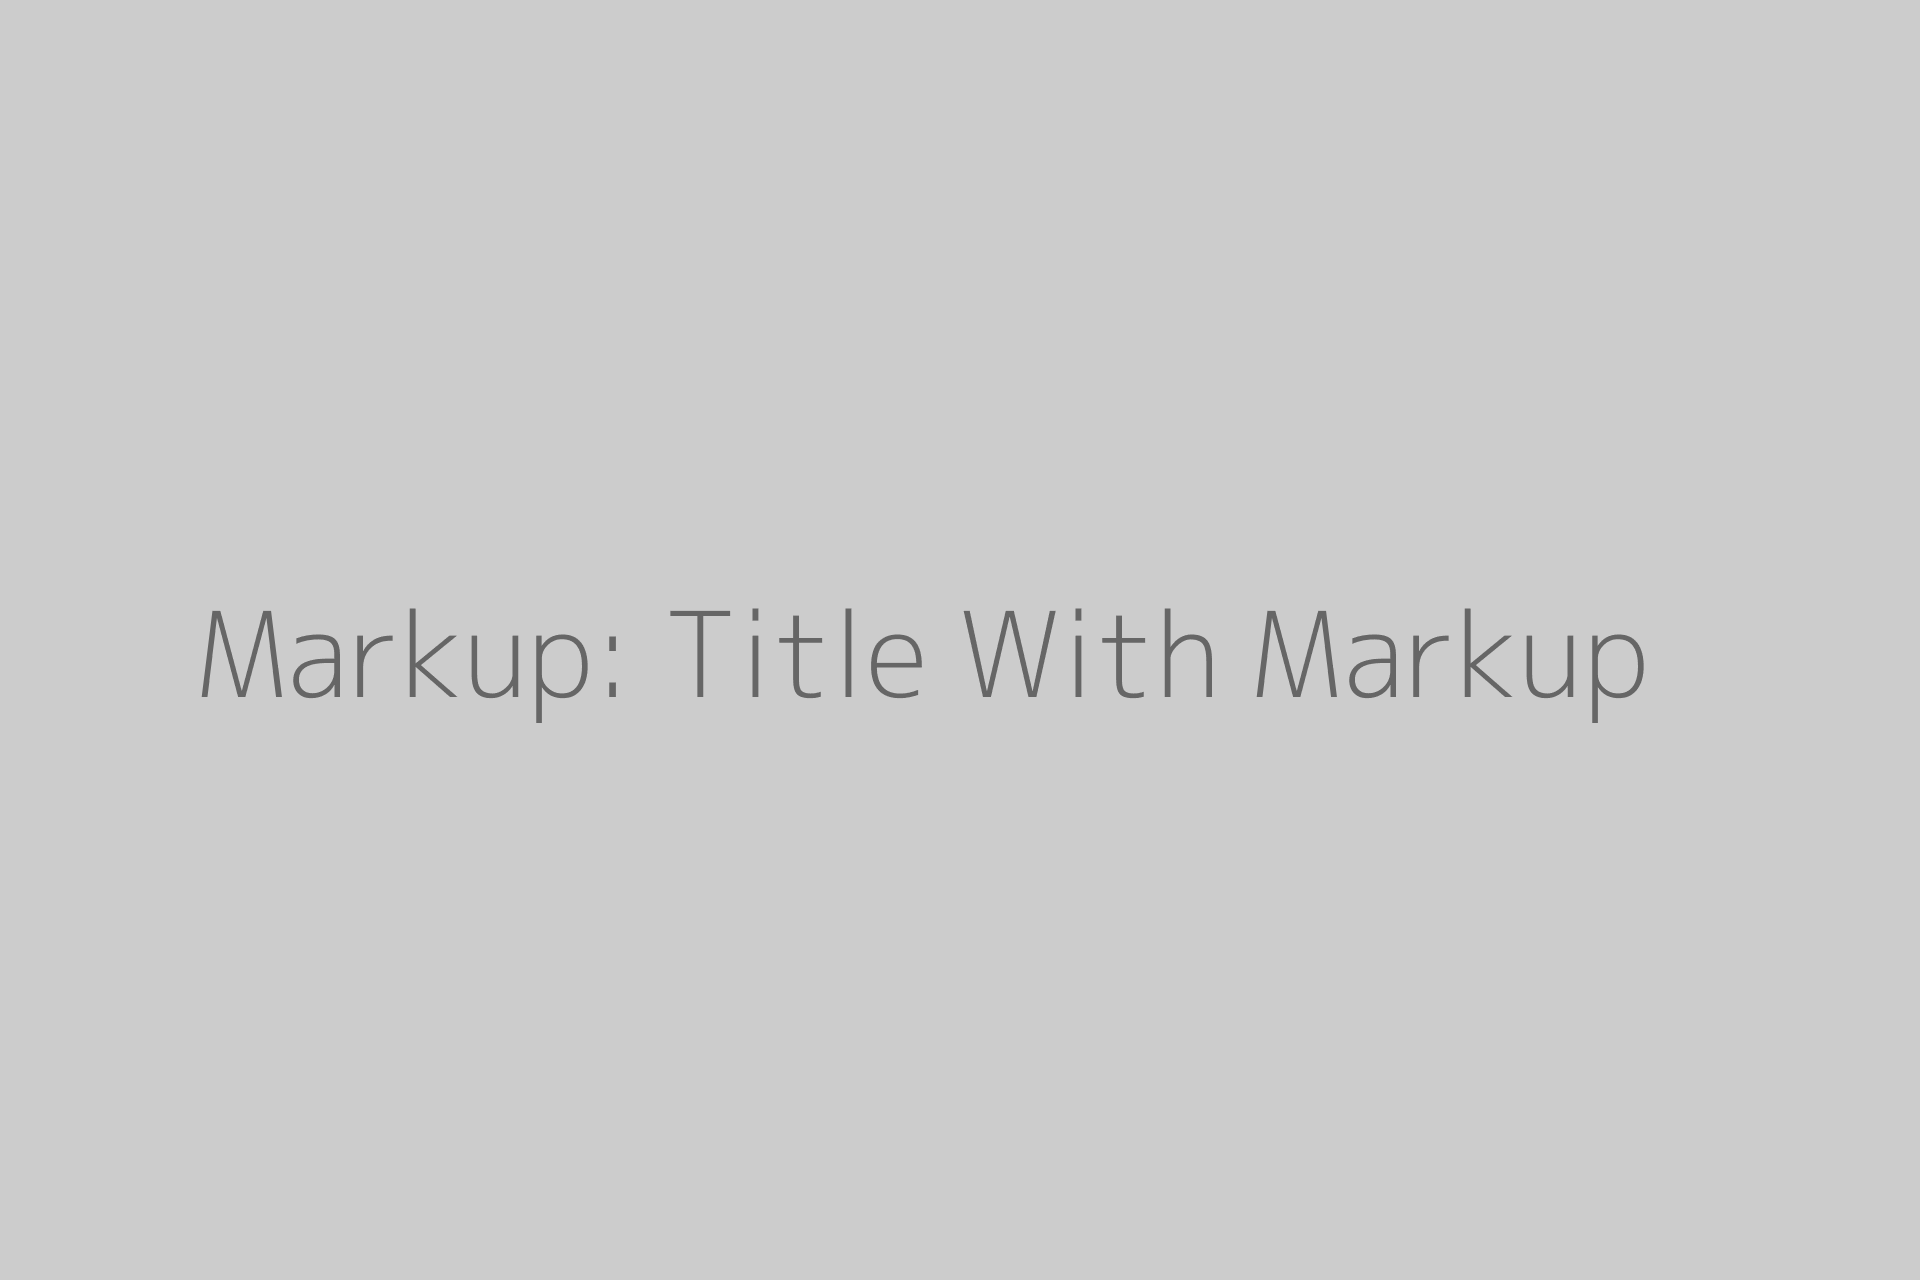 Markup: Title With Markup